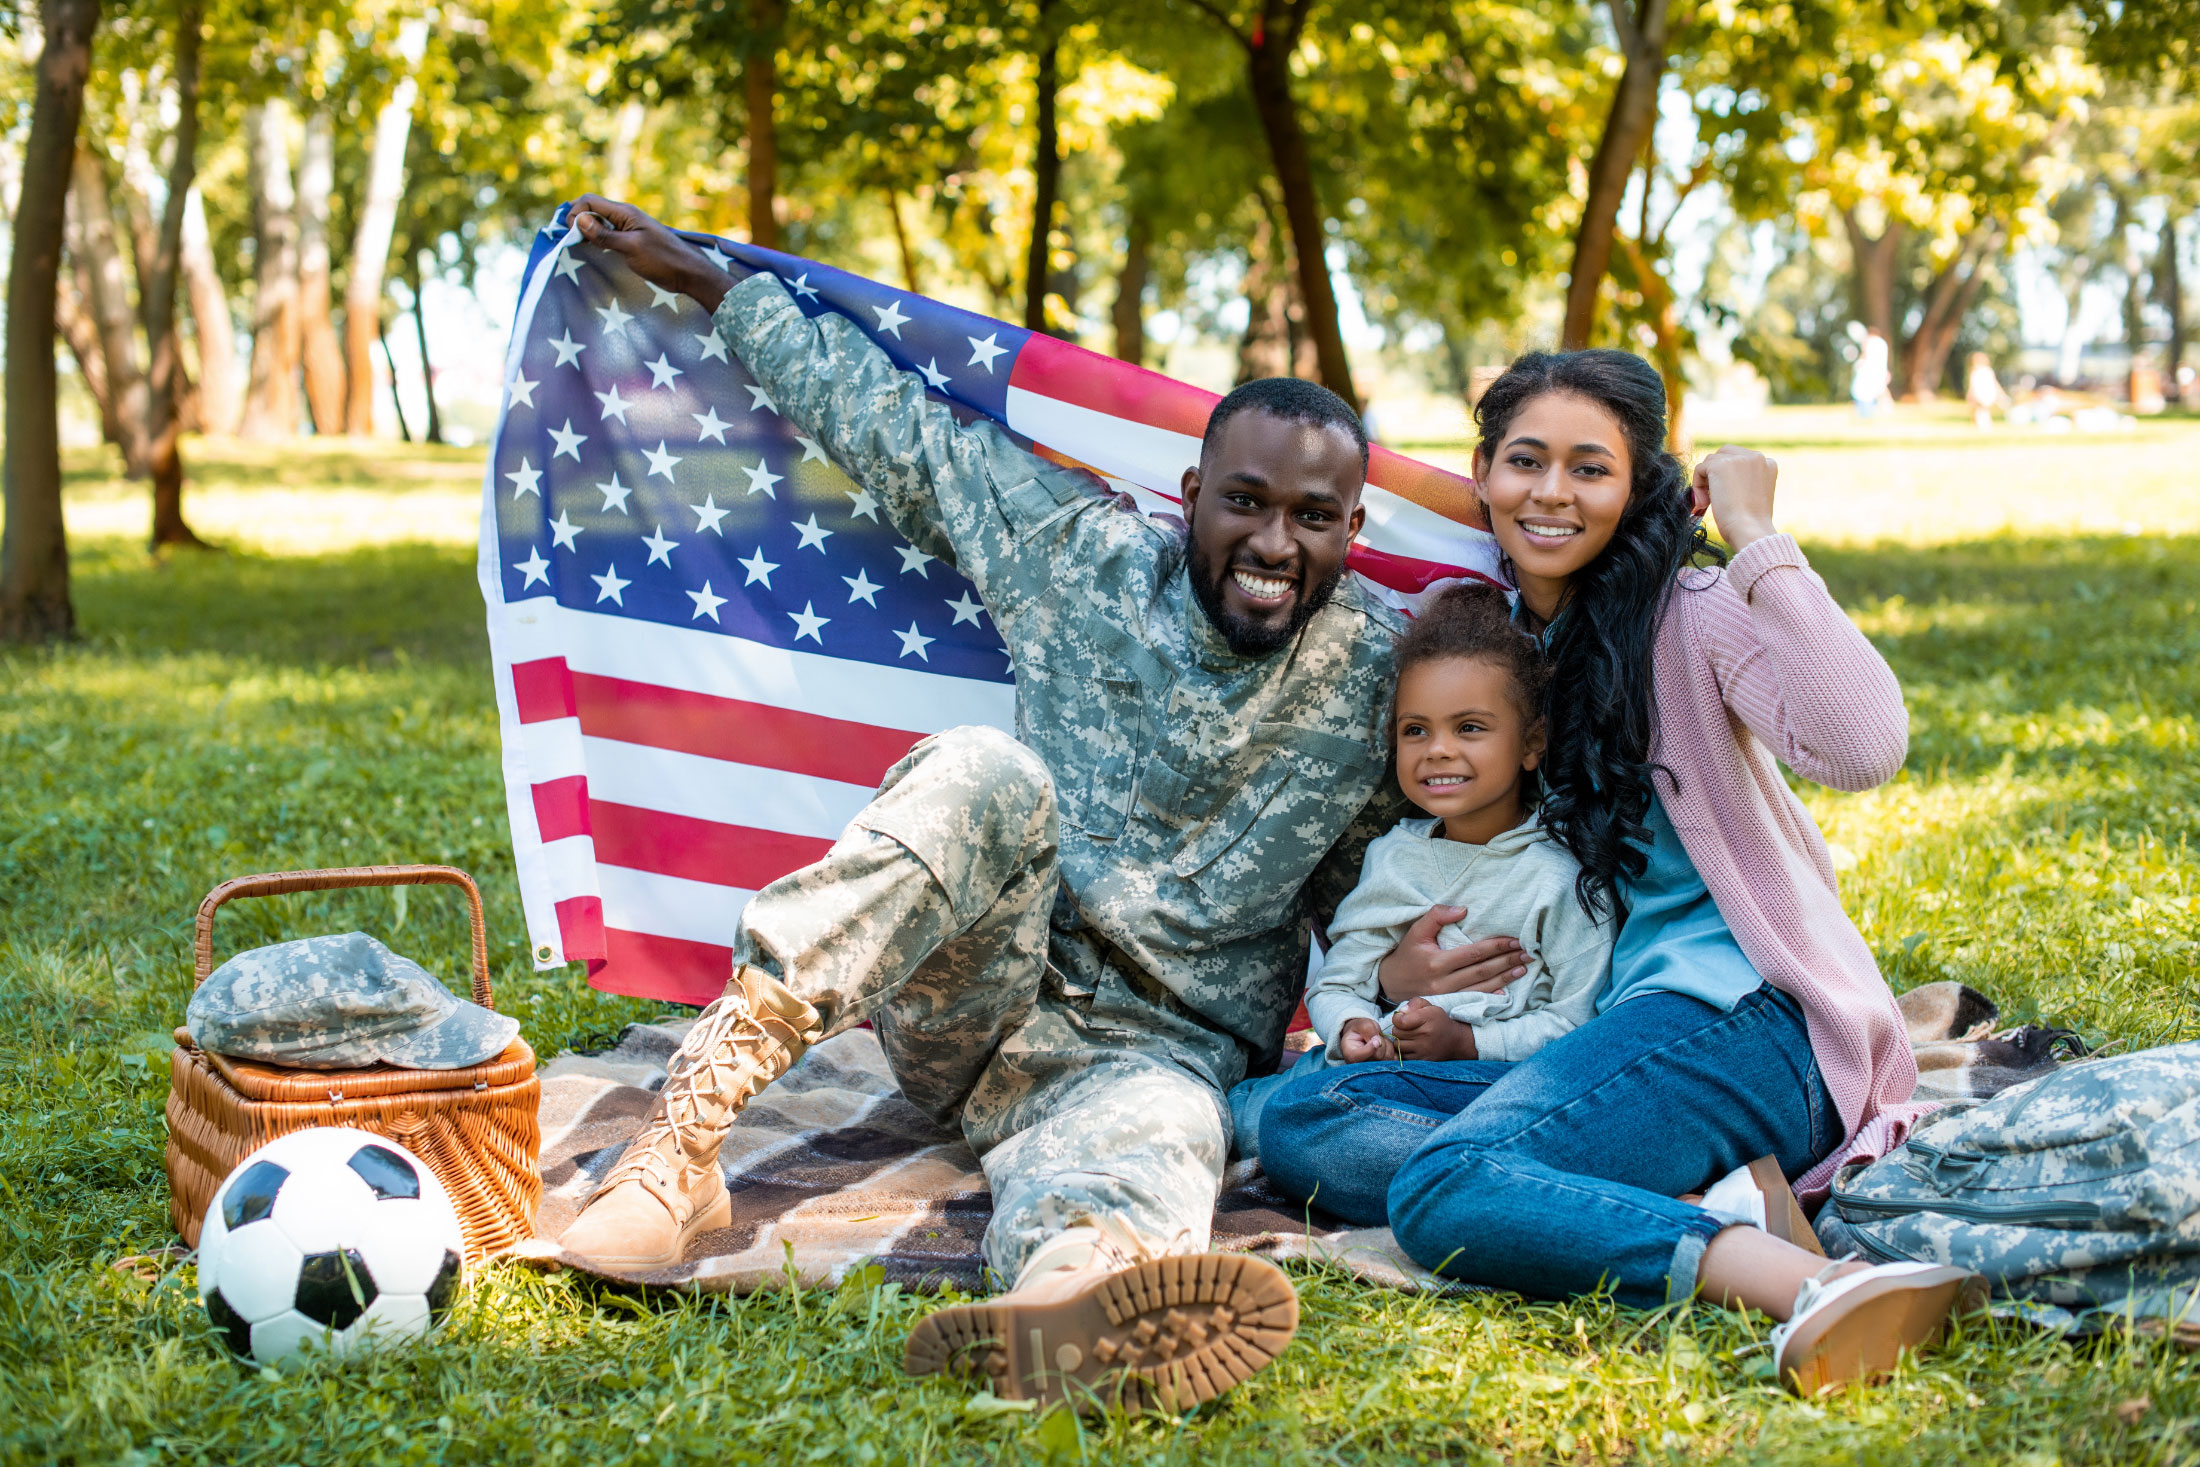 Military family holding an American flag at a park.